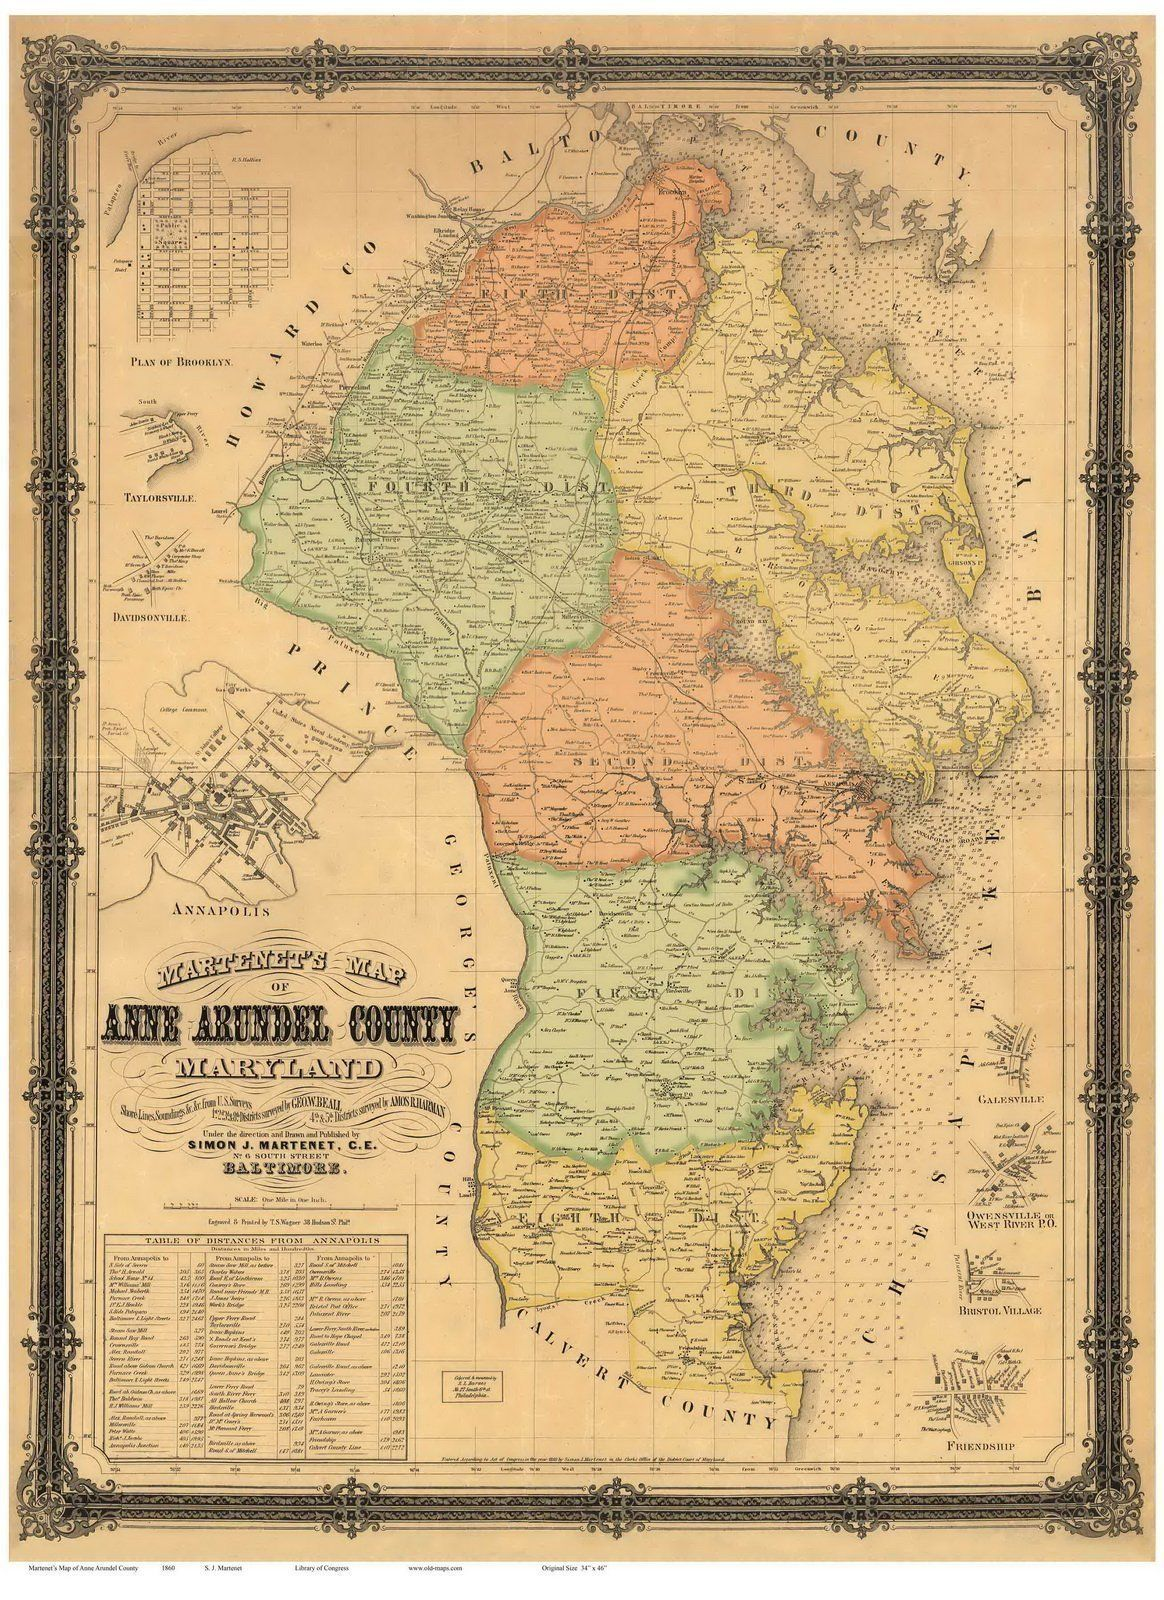 Baltimore county maryland genealogy learn familysearch org - Anne Arundel County Maryland 1860 Wall Map With Homeowner Names Reprint Find Your